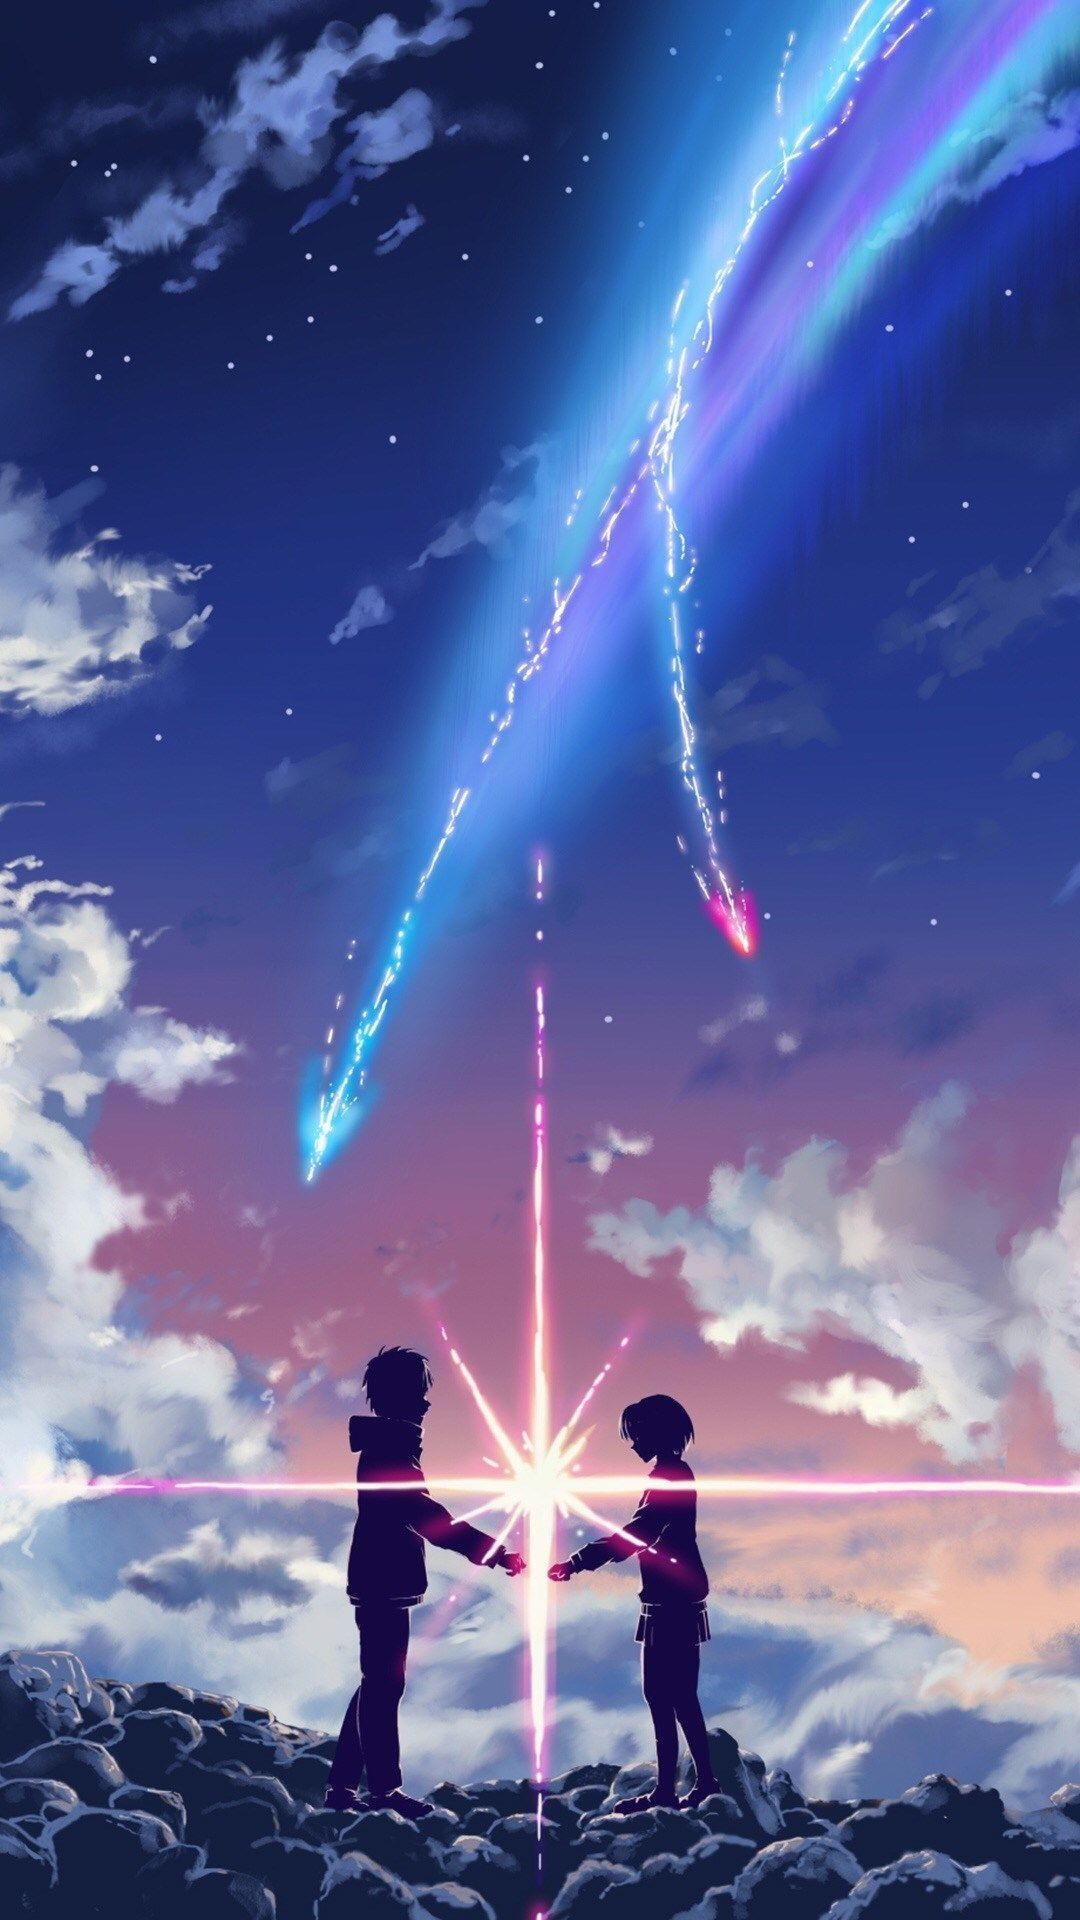 Anime Aesthetic Iphone Wallpaper Fresh Your Name Movie Touching Through Space Poster Iphone 6